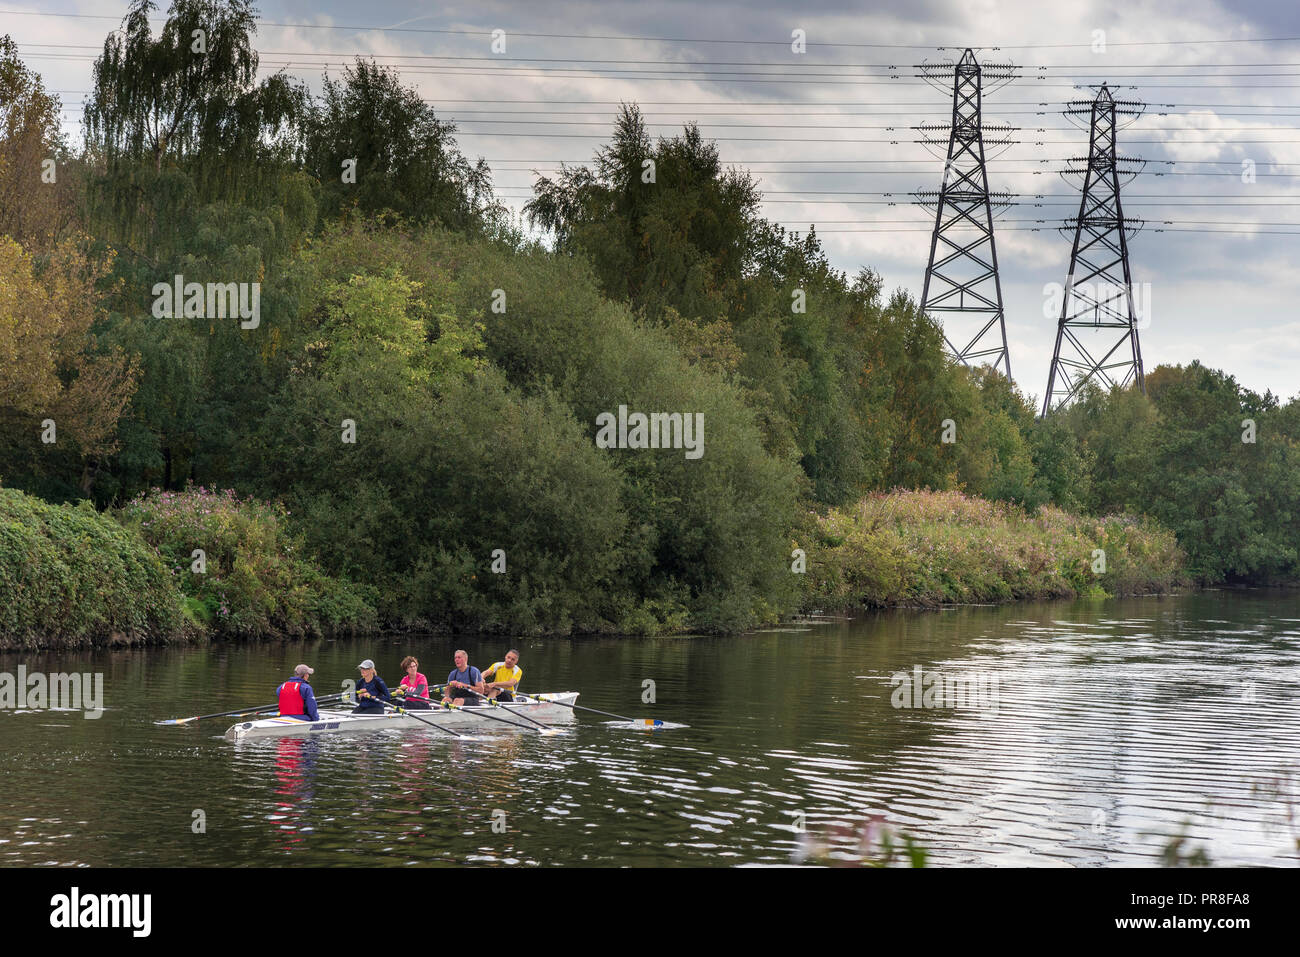 River Mersey at Latchford, Warrington. Rowers Elctricity pylons. - Stock Image